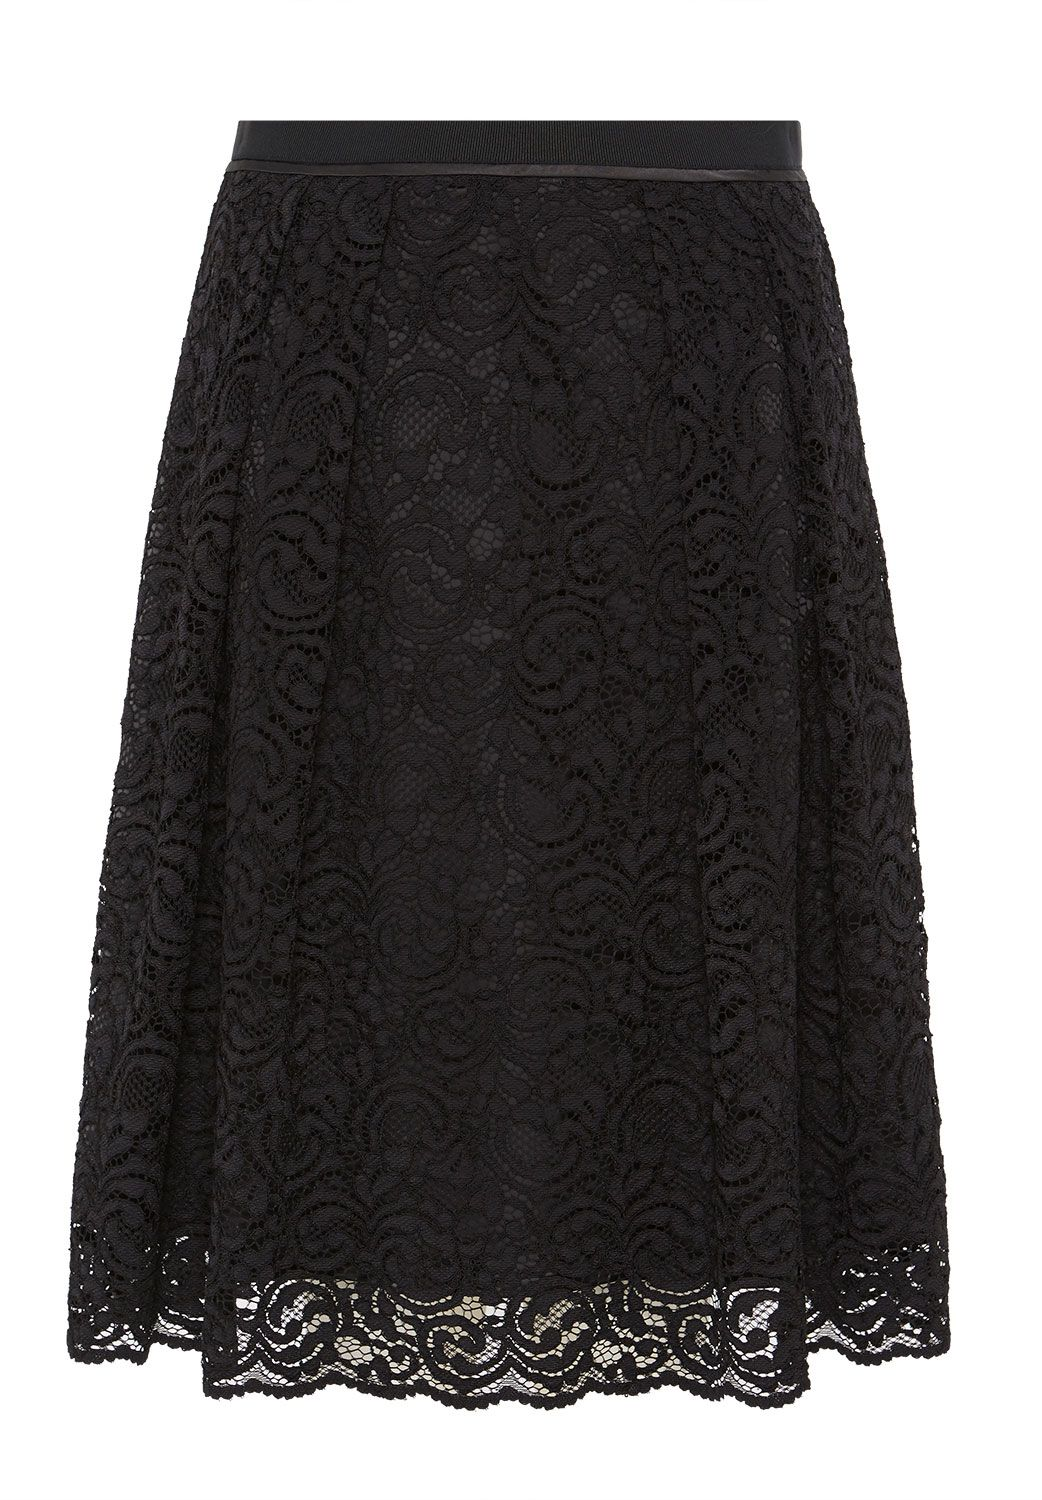 Hallhuber Hallhuber Lace skirt with grosgrain waist, Black